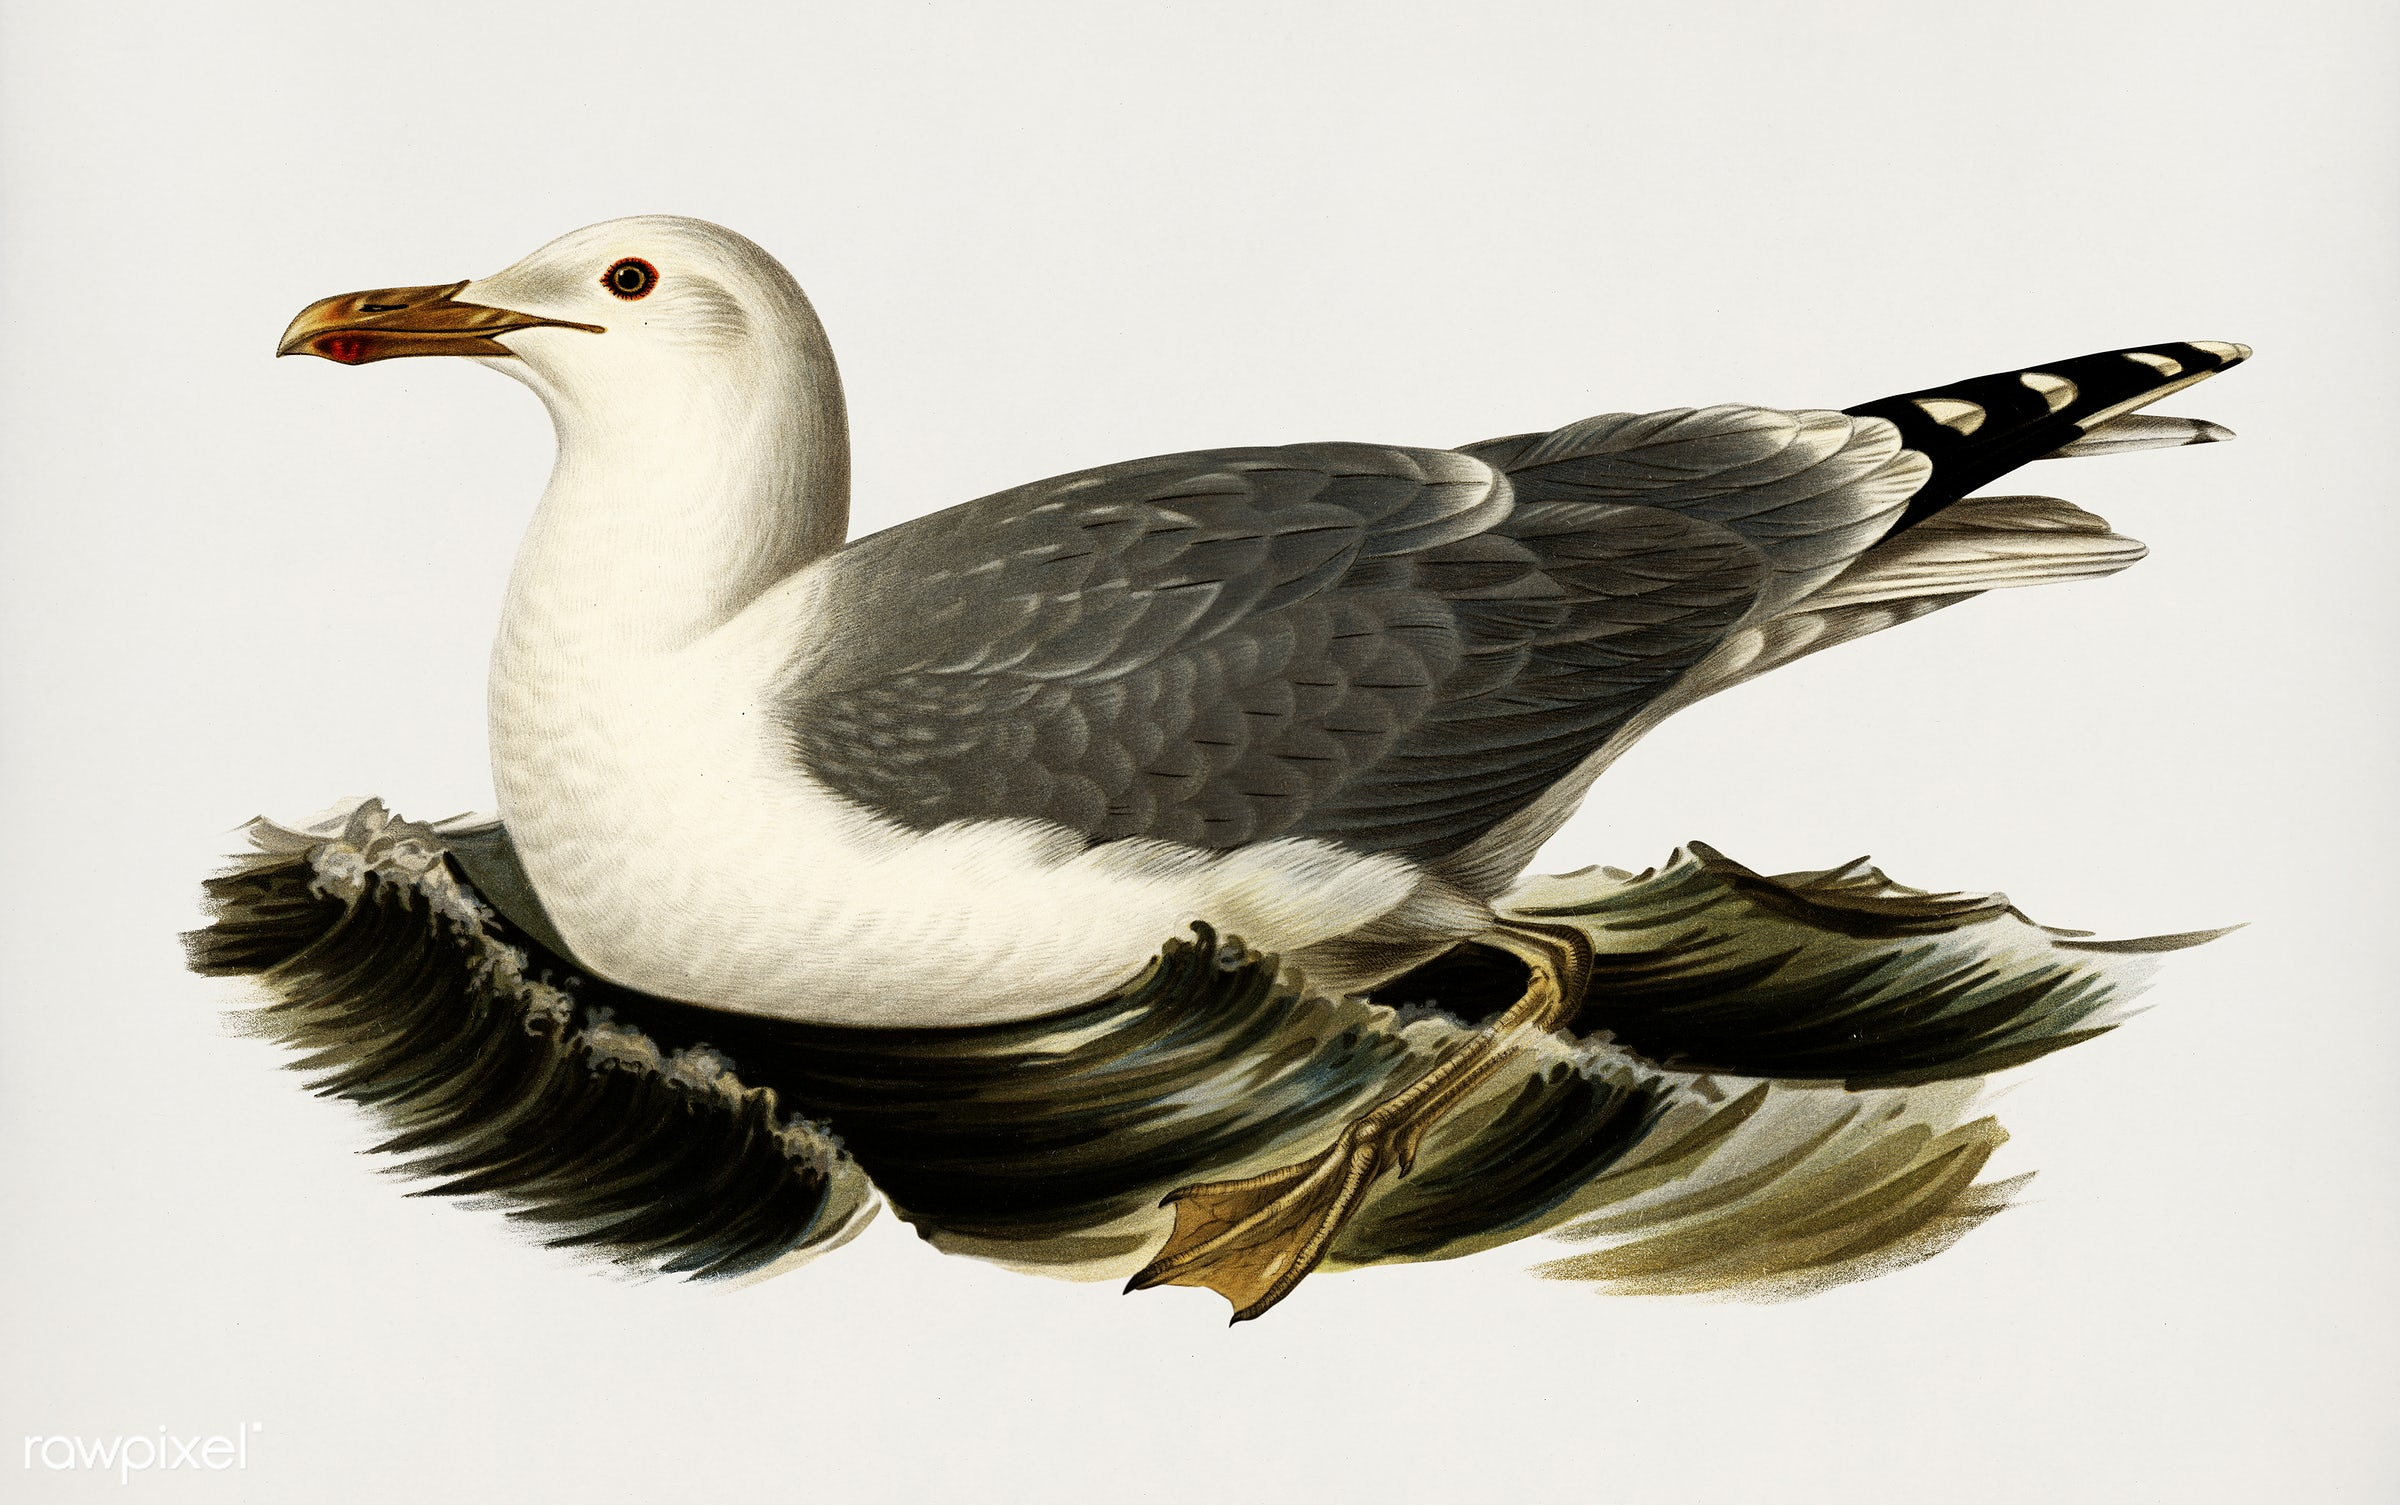 European herring gull (Larus Argentatus) illustrated by the von Wright brothers. Digitally enhanced from our own 1929 folio...